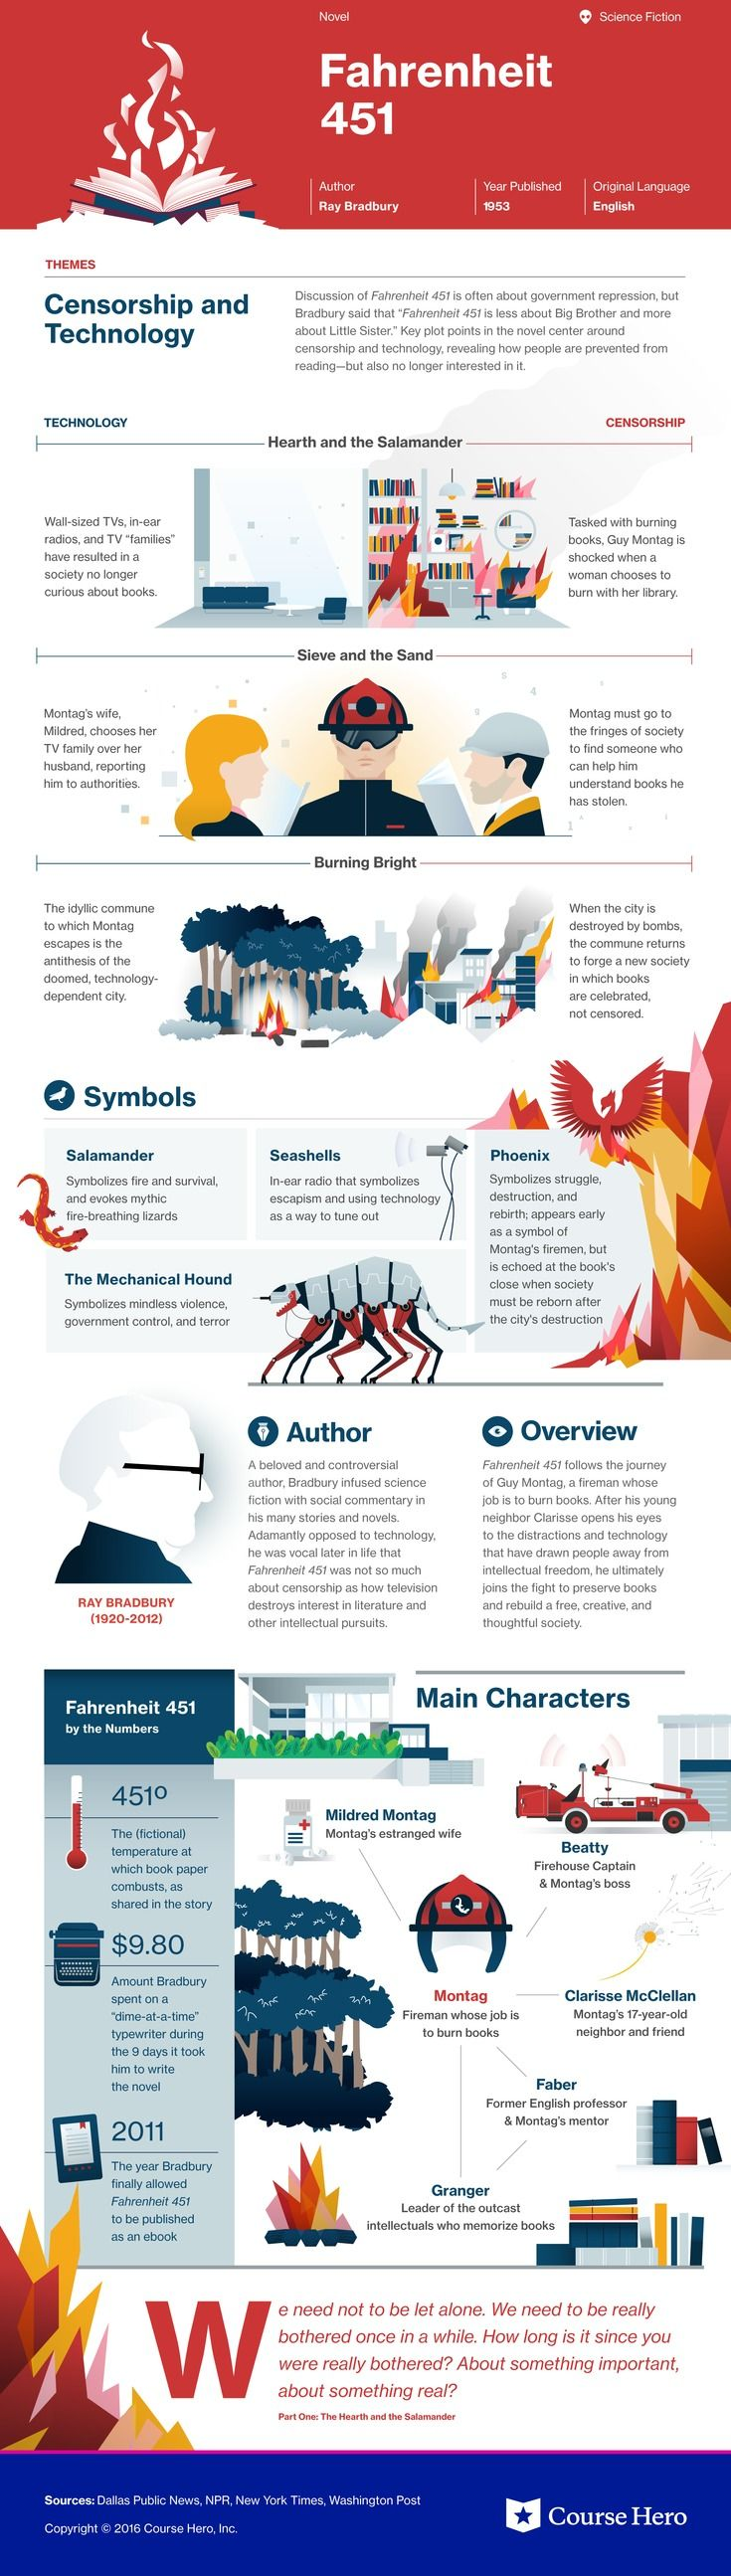 This @CourseHero infographic on Fahrenheit 451 is both visually stunning and informative!